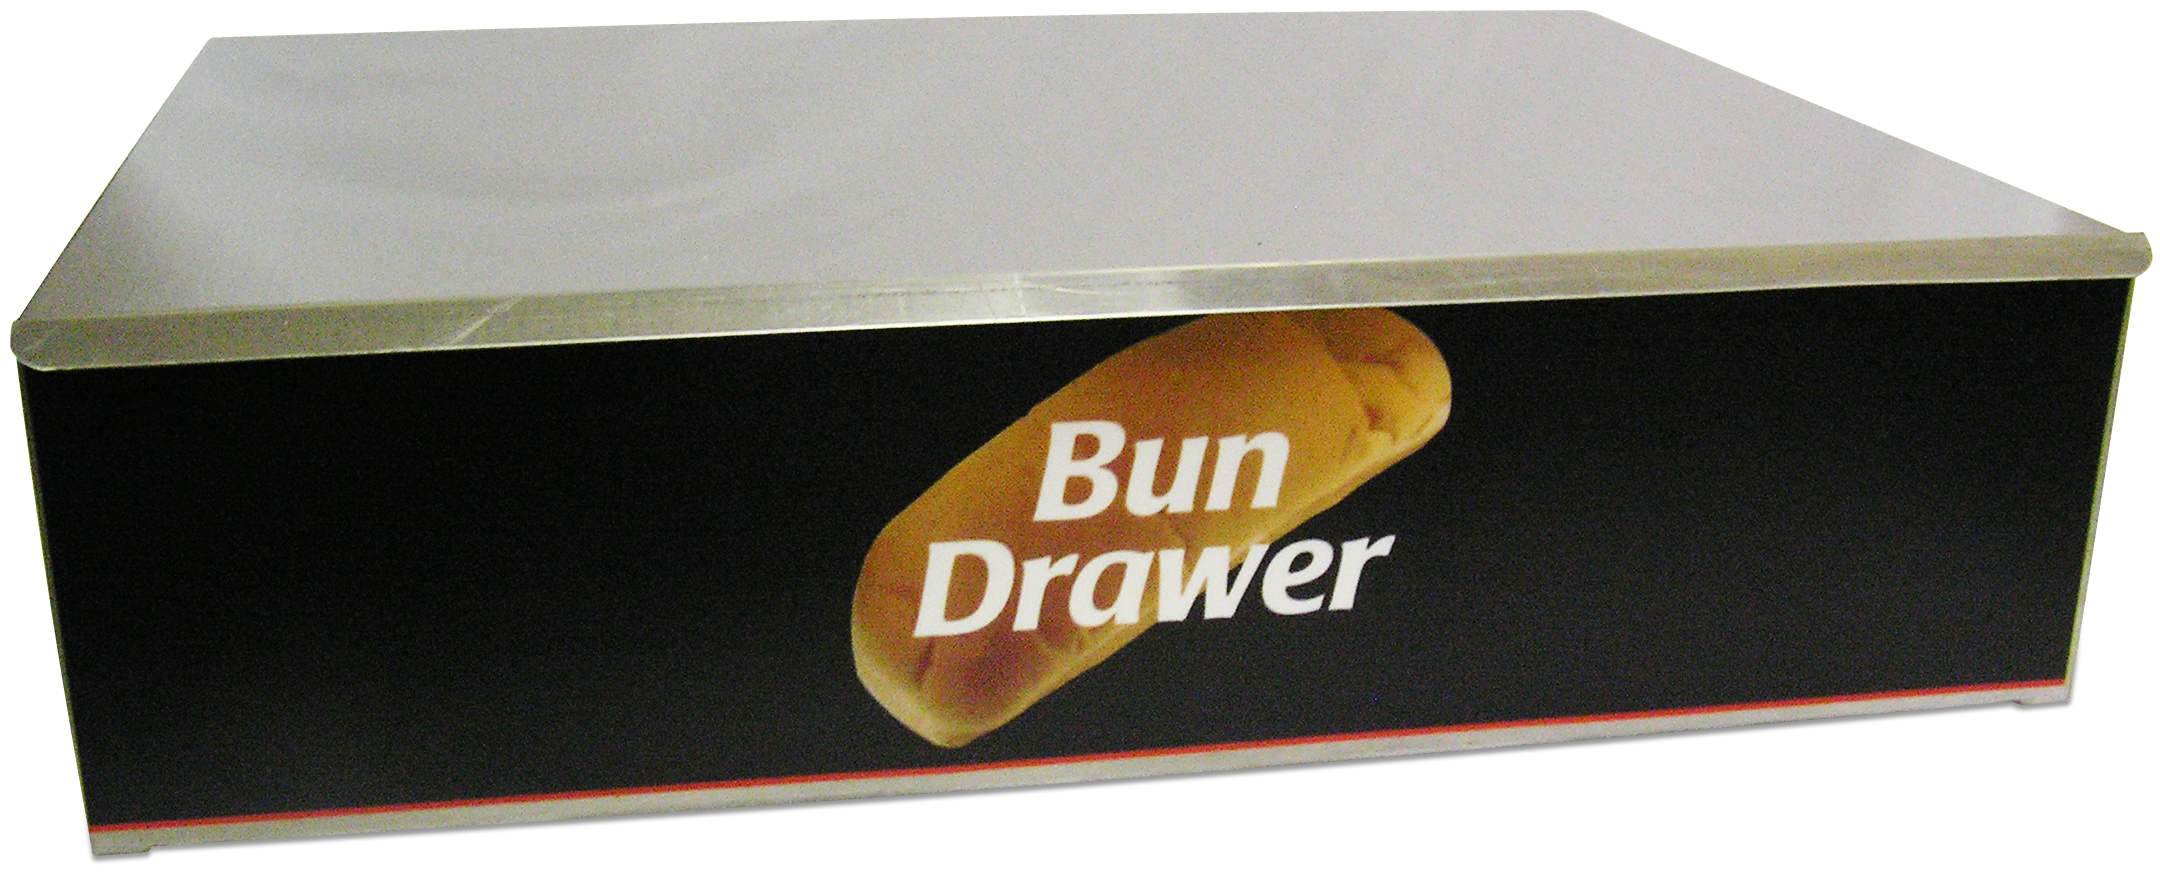 Benchmark USA 65030 Dry Bun Box 30 Dog Roller Grill 5a3bee9be224615ab87bbd59